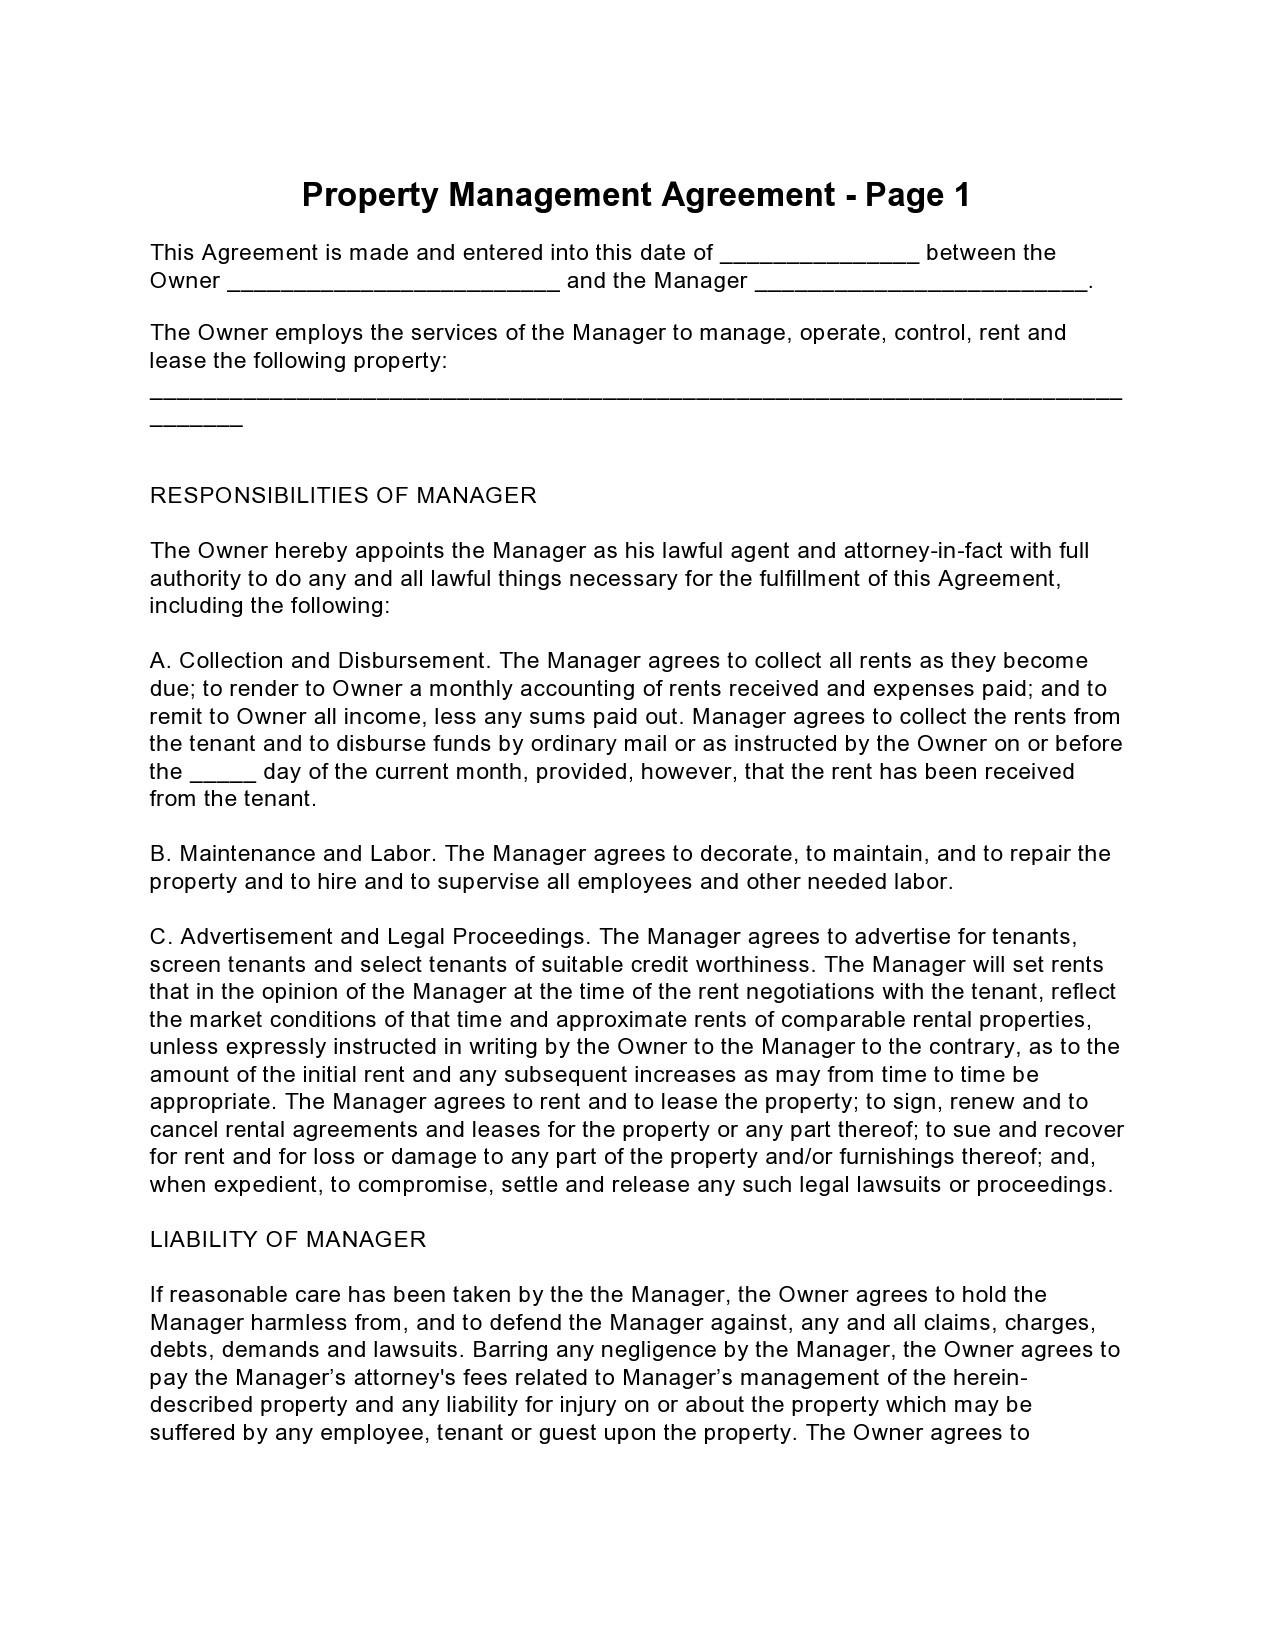 Free property management agreement 19